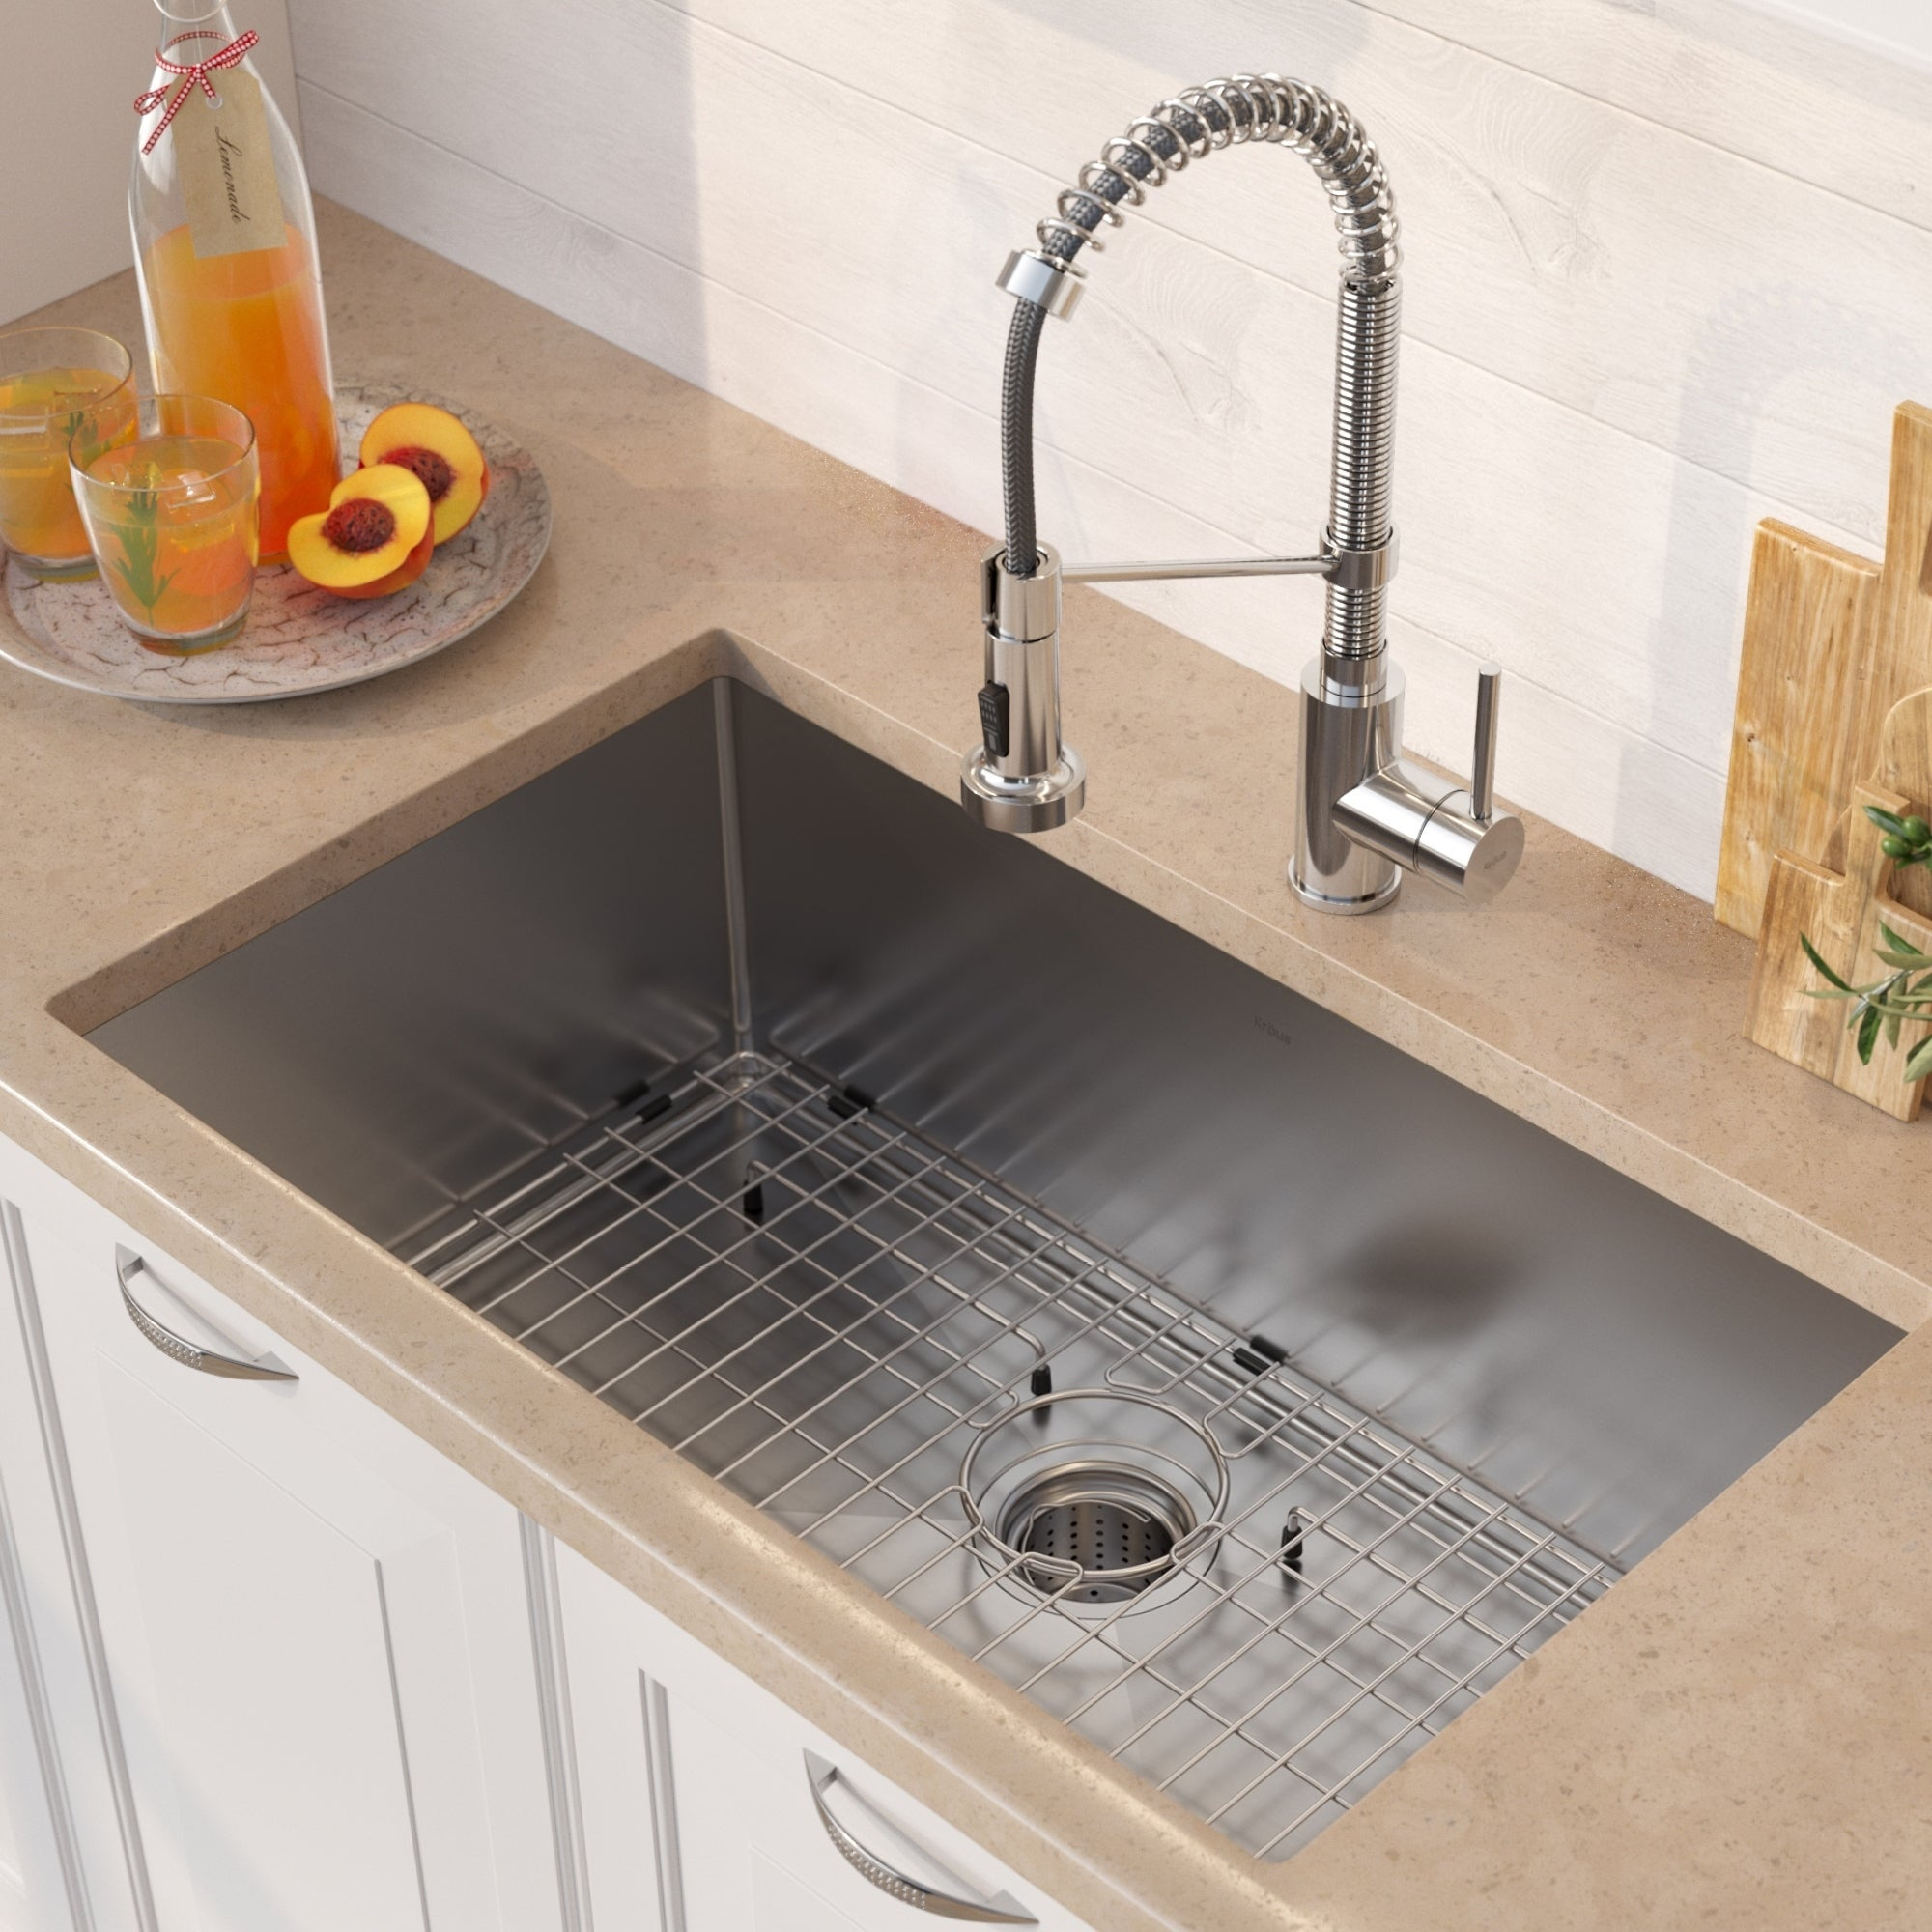 Kraus 30 Inch Stainless Steel Kitchen Sink Faucet Soap Dispenser Set On Free Shipping Today 23569469